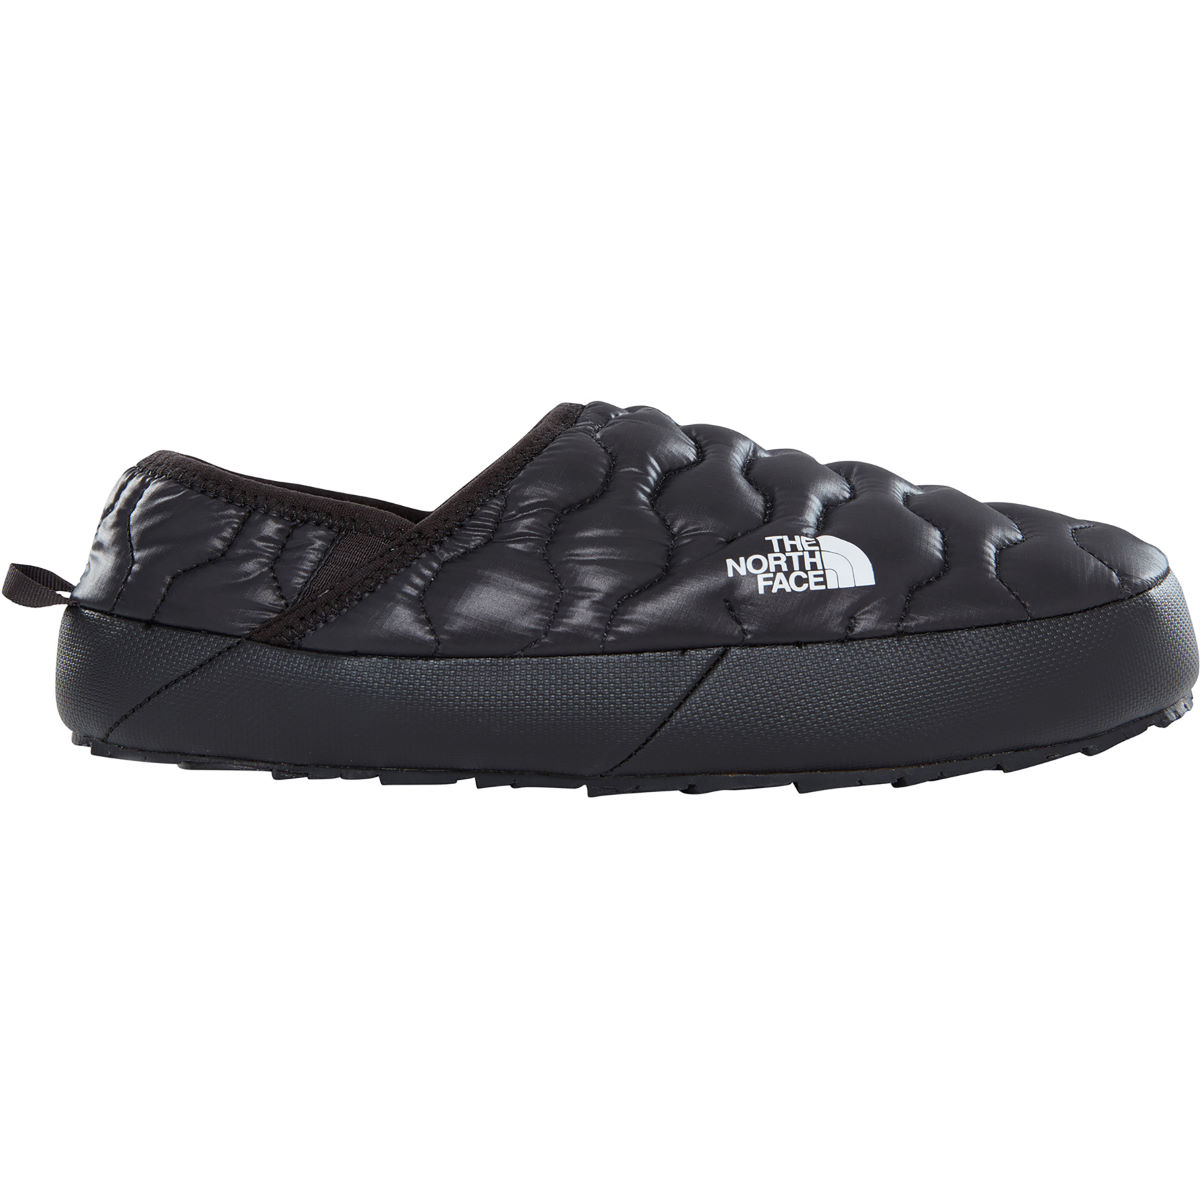 The North Face ThermoBall™ Traction Mule IV - Pantuflas